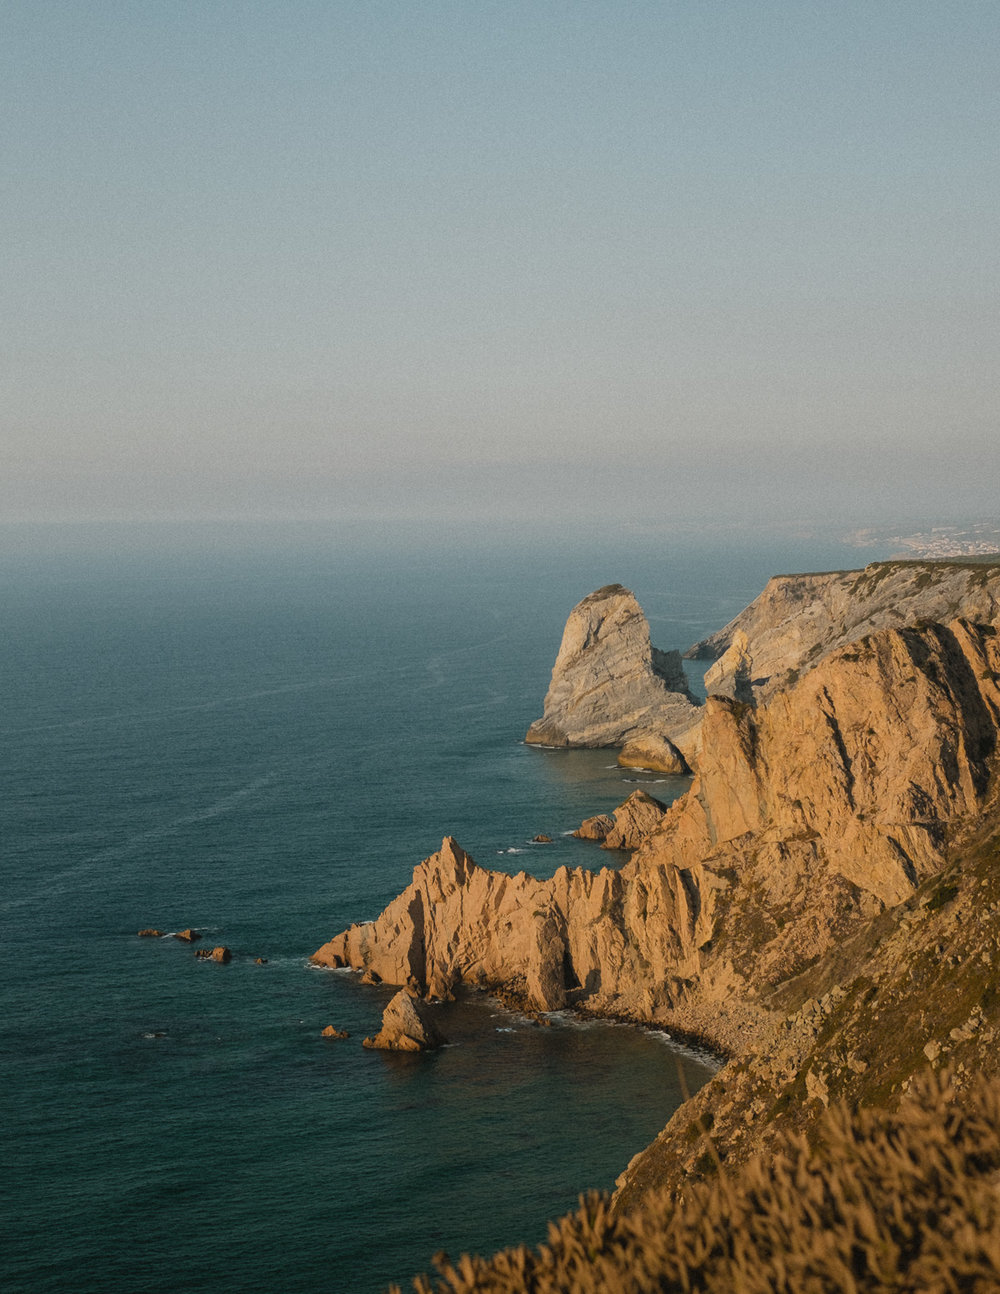 Cabo da Roca, the easternmost tip of continental Europe.